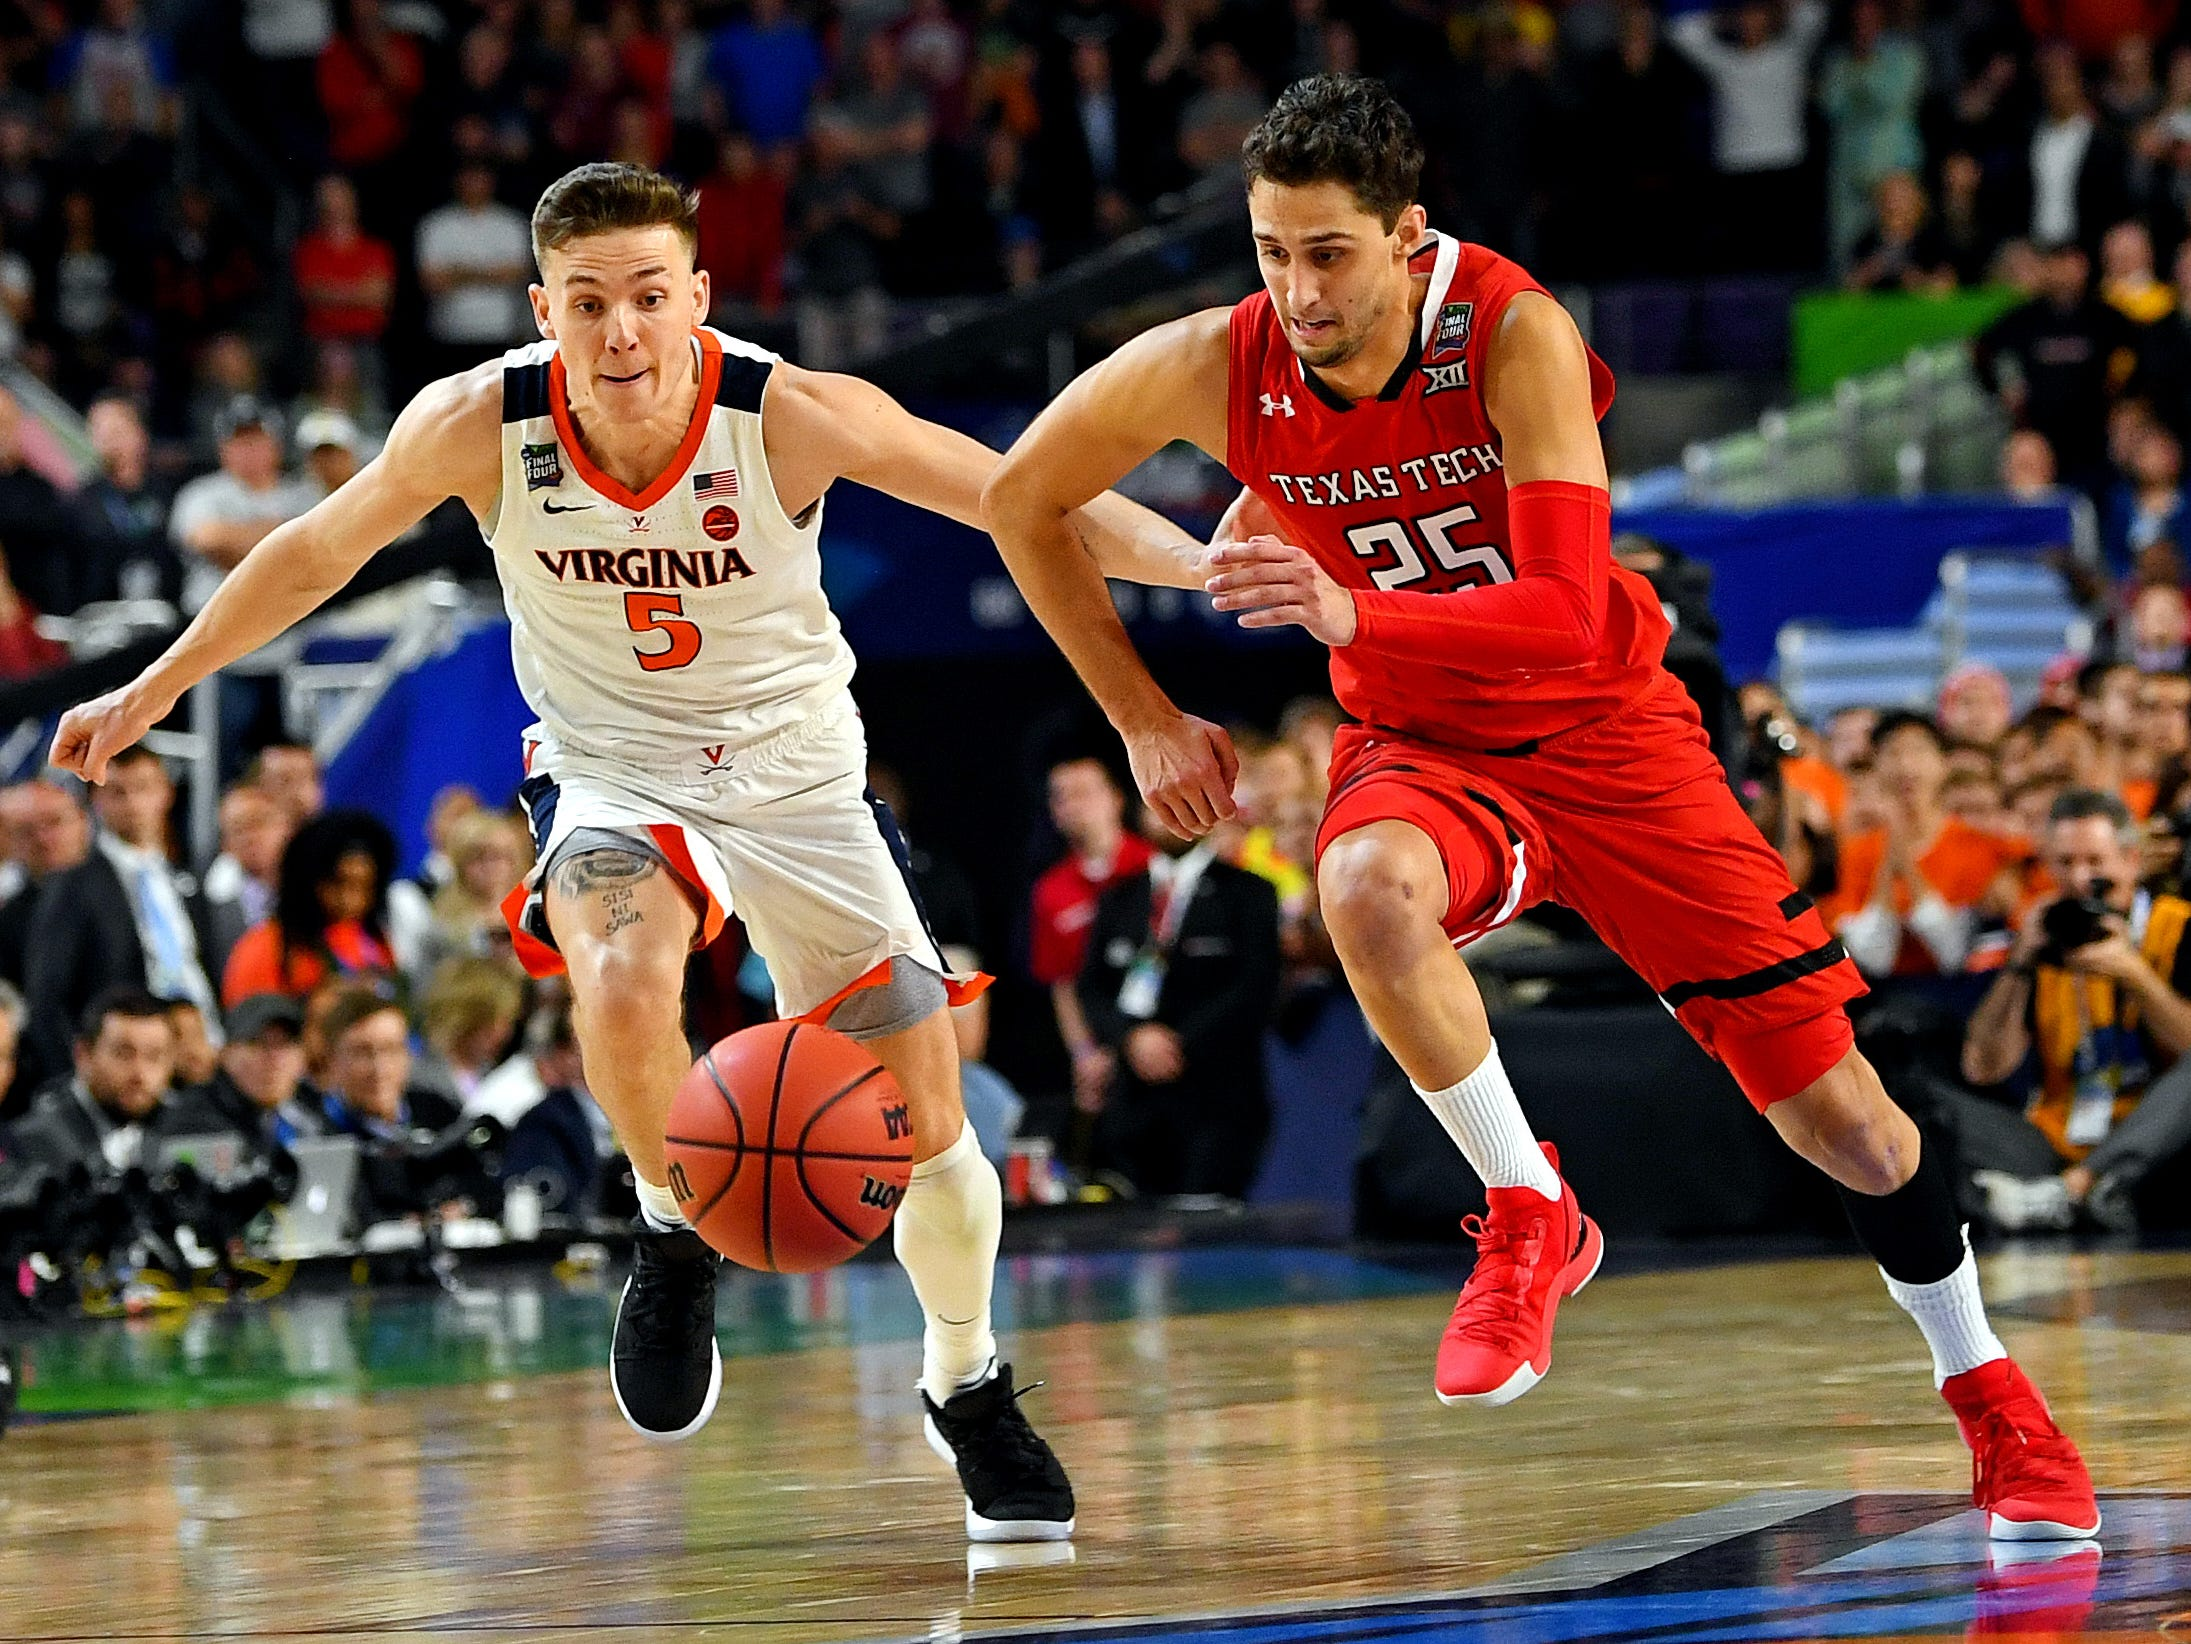 Apr 8, 2019; Minneapolis, MN, USA; Texas Tech Red Raiders guard Davide Moretti (25) and Virginia Cavaliers guard Kyle Guy (5) go for a loose ball during overtime in the championship game of the 2019 men&#39